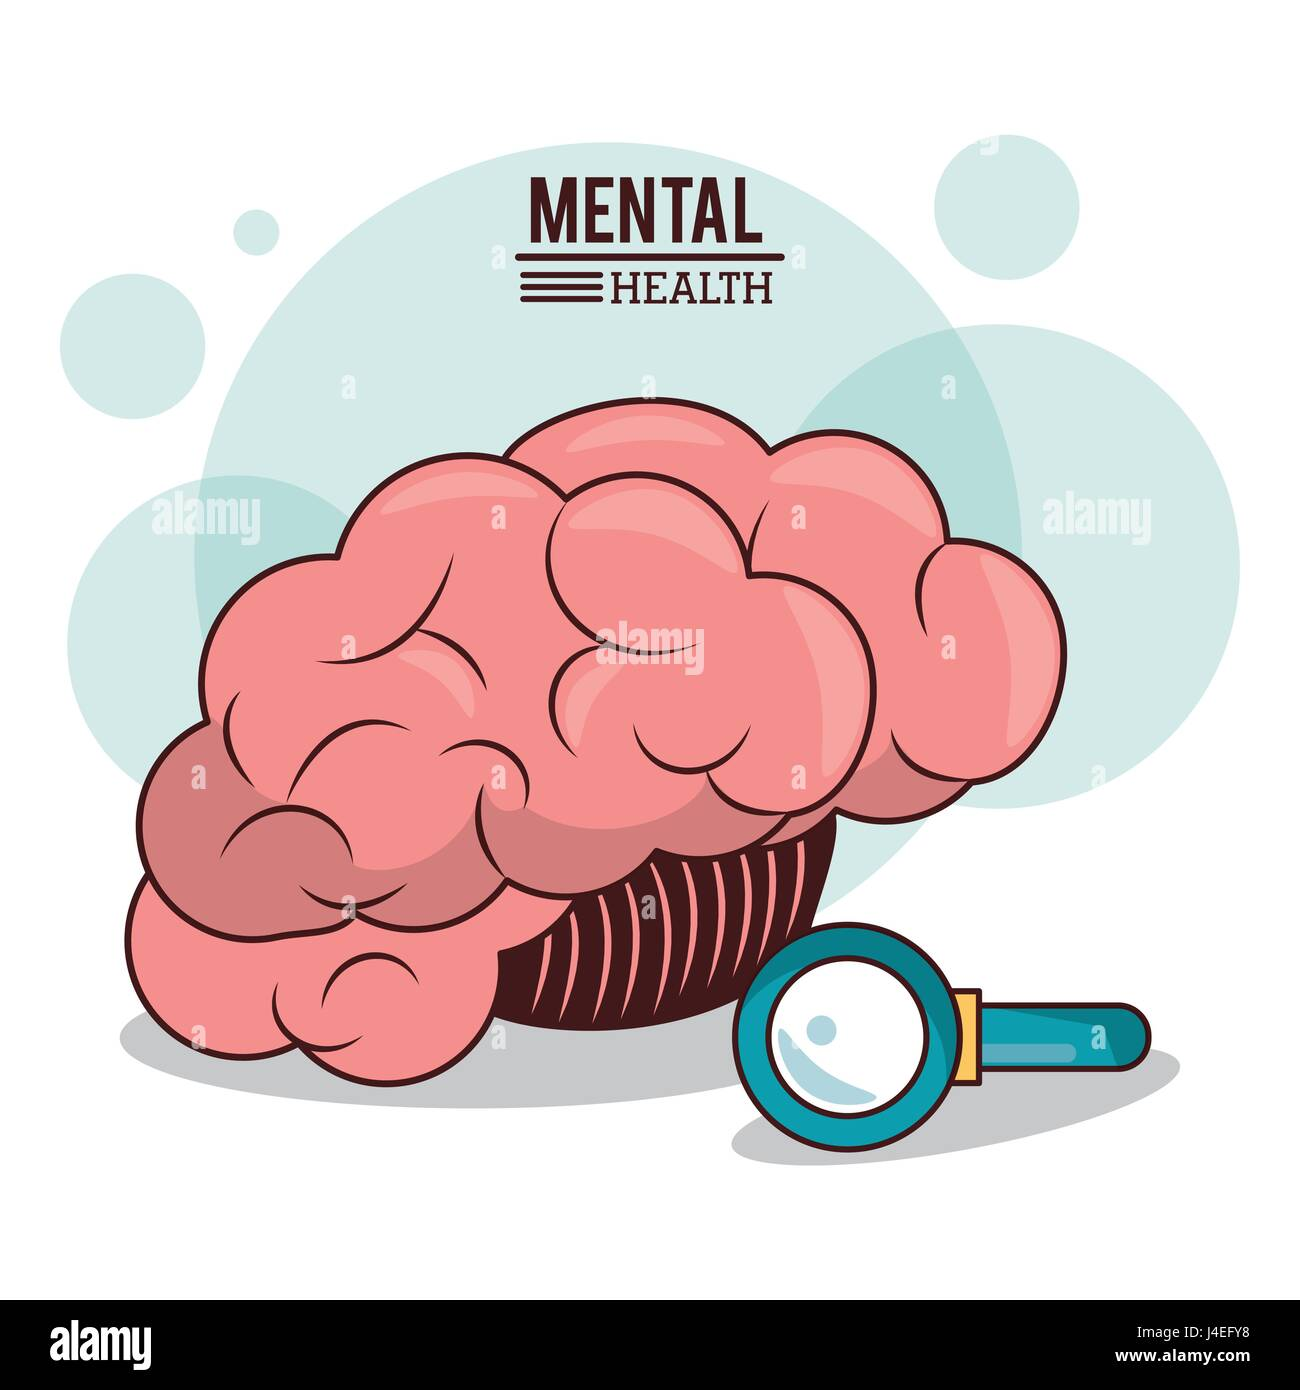 mental health. human brain search innovation discovery image - Stock Image